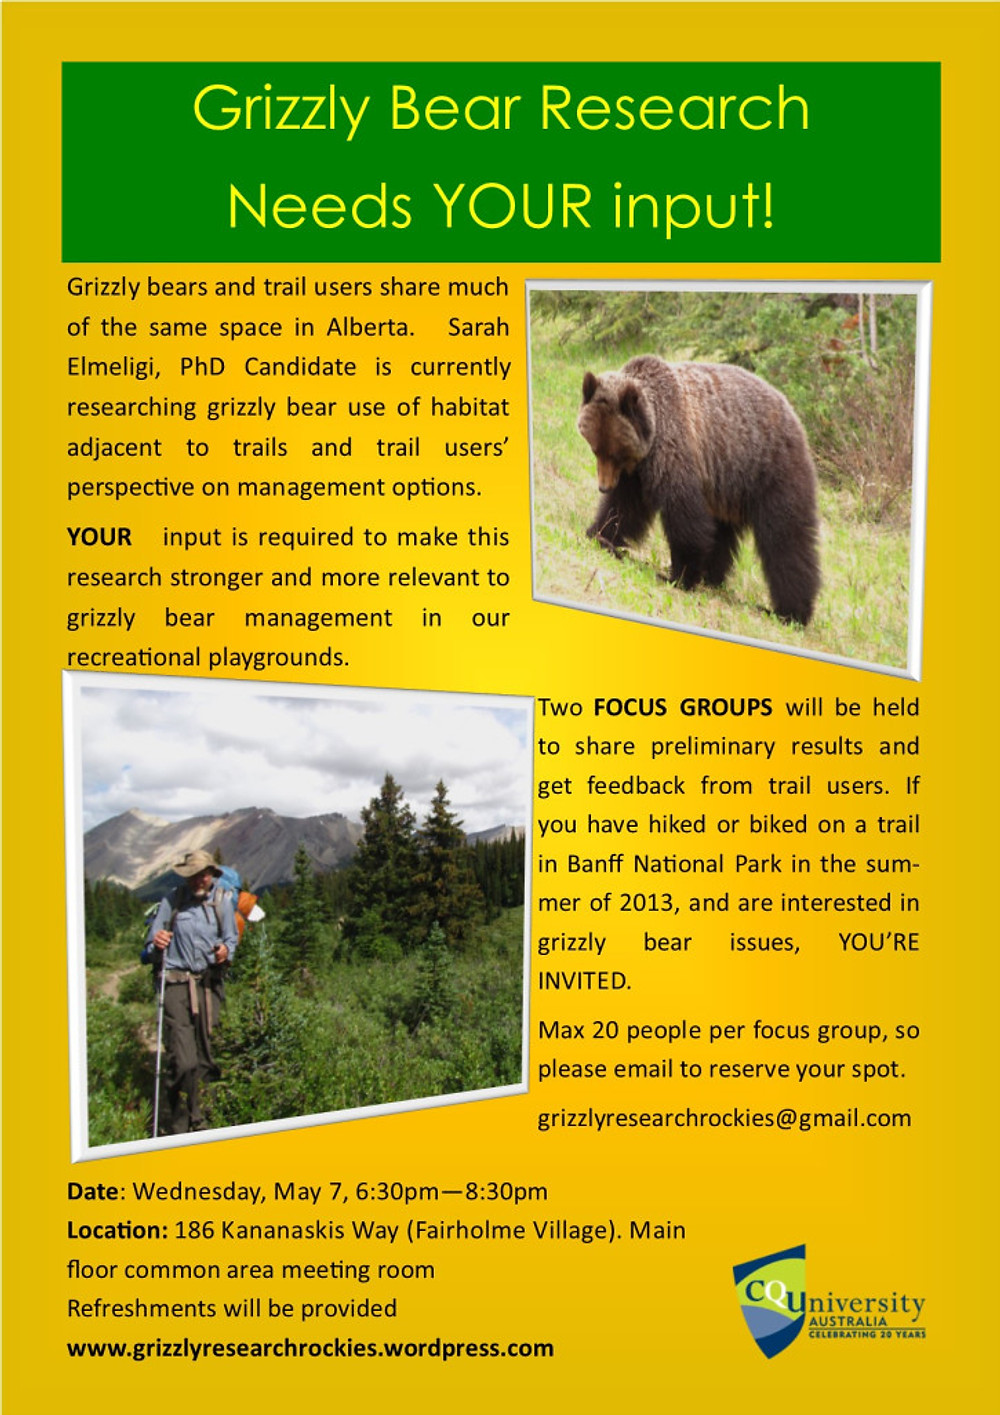 Details about the Canmore Focus Group